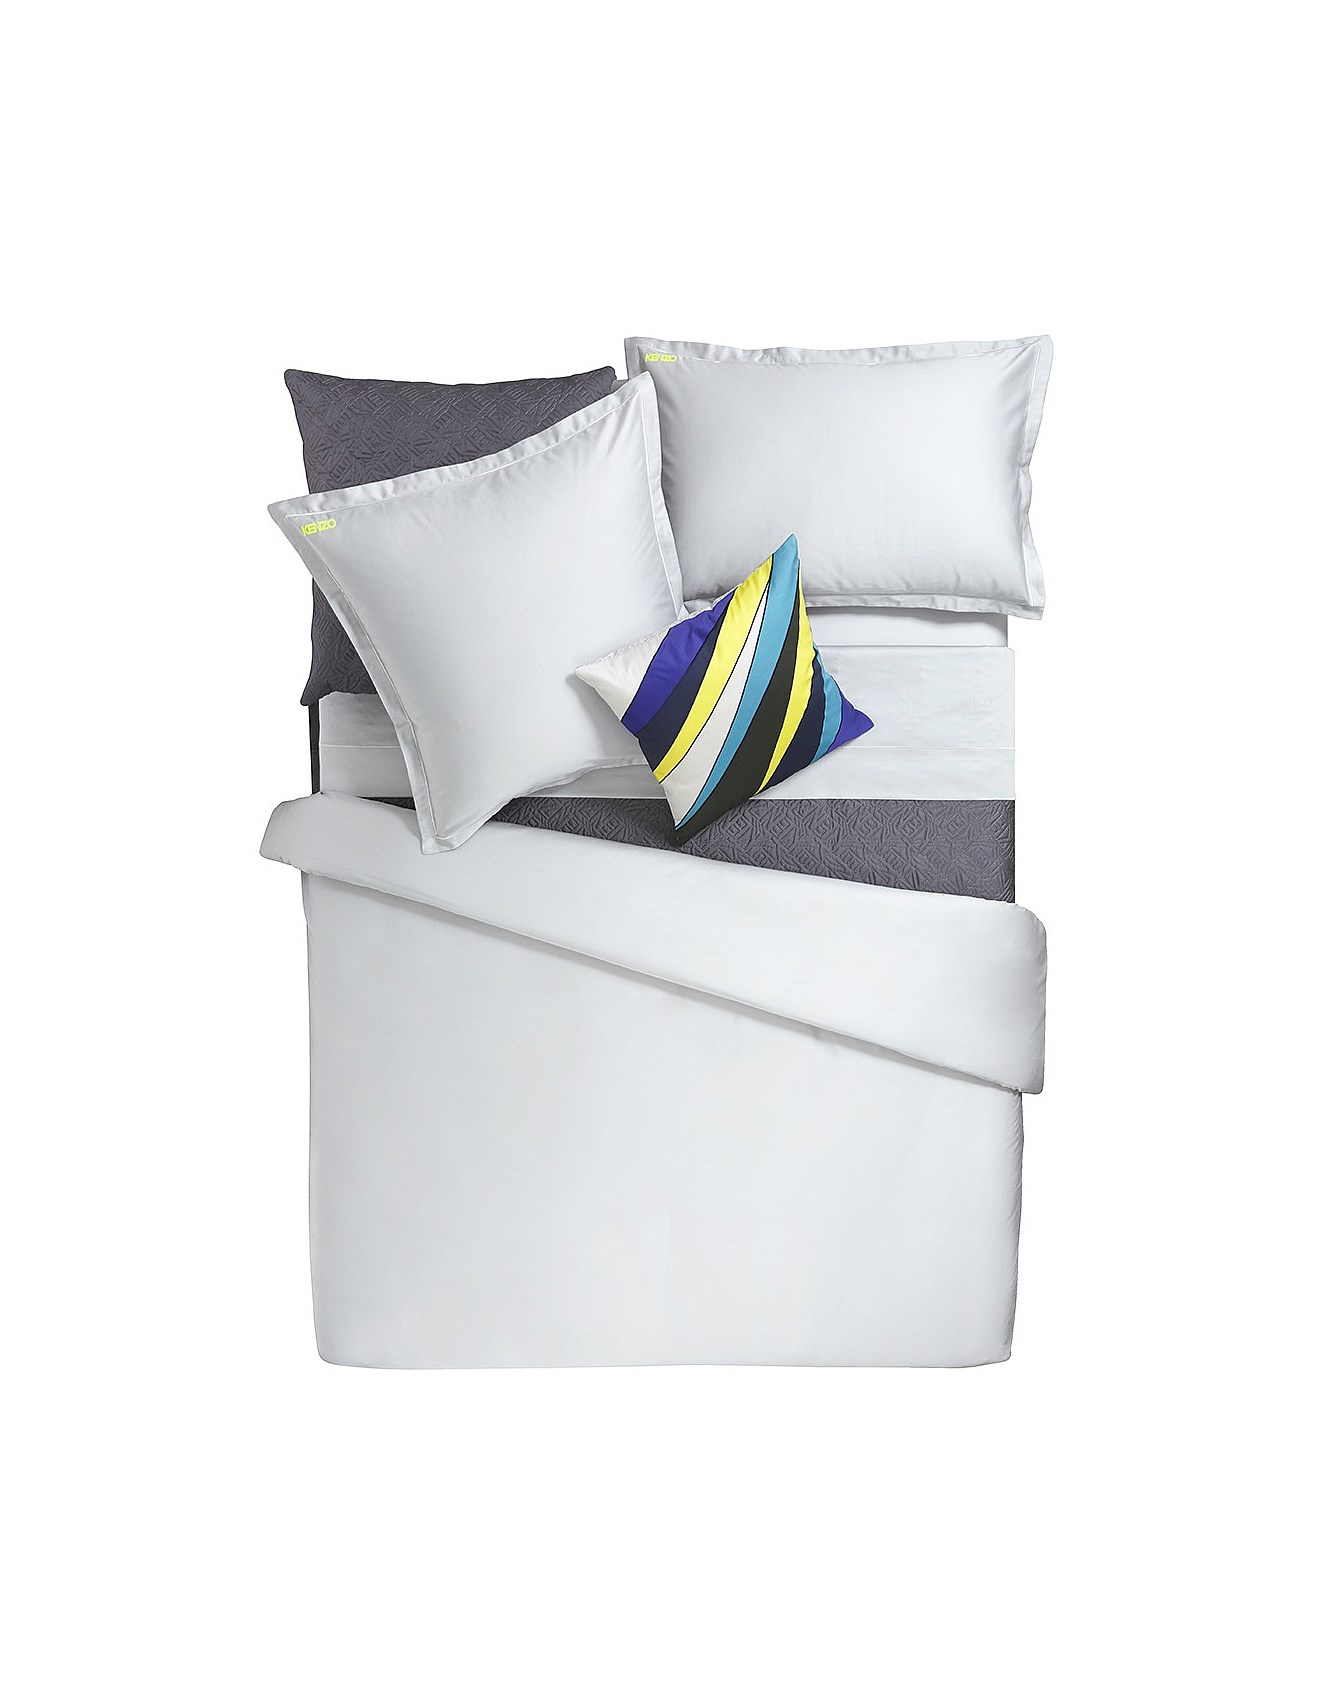 56fe6fa87b Home - ICONIC KING BED DUVET COVER